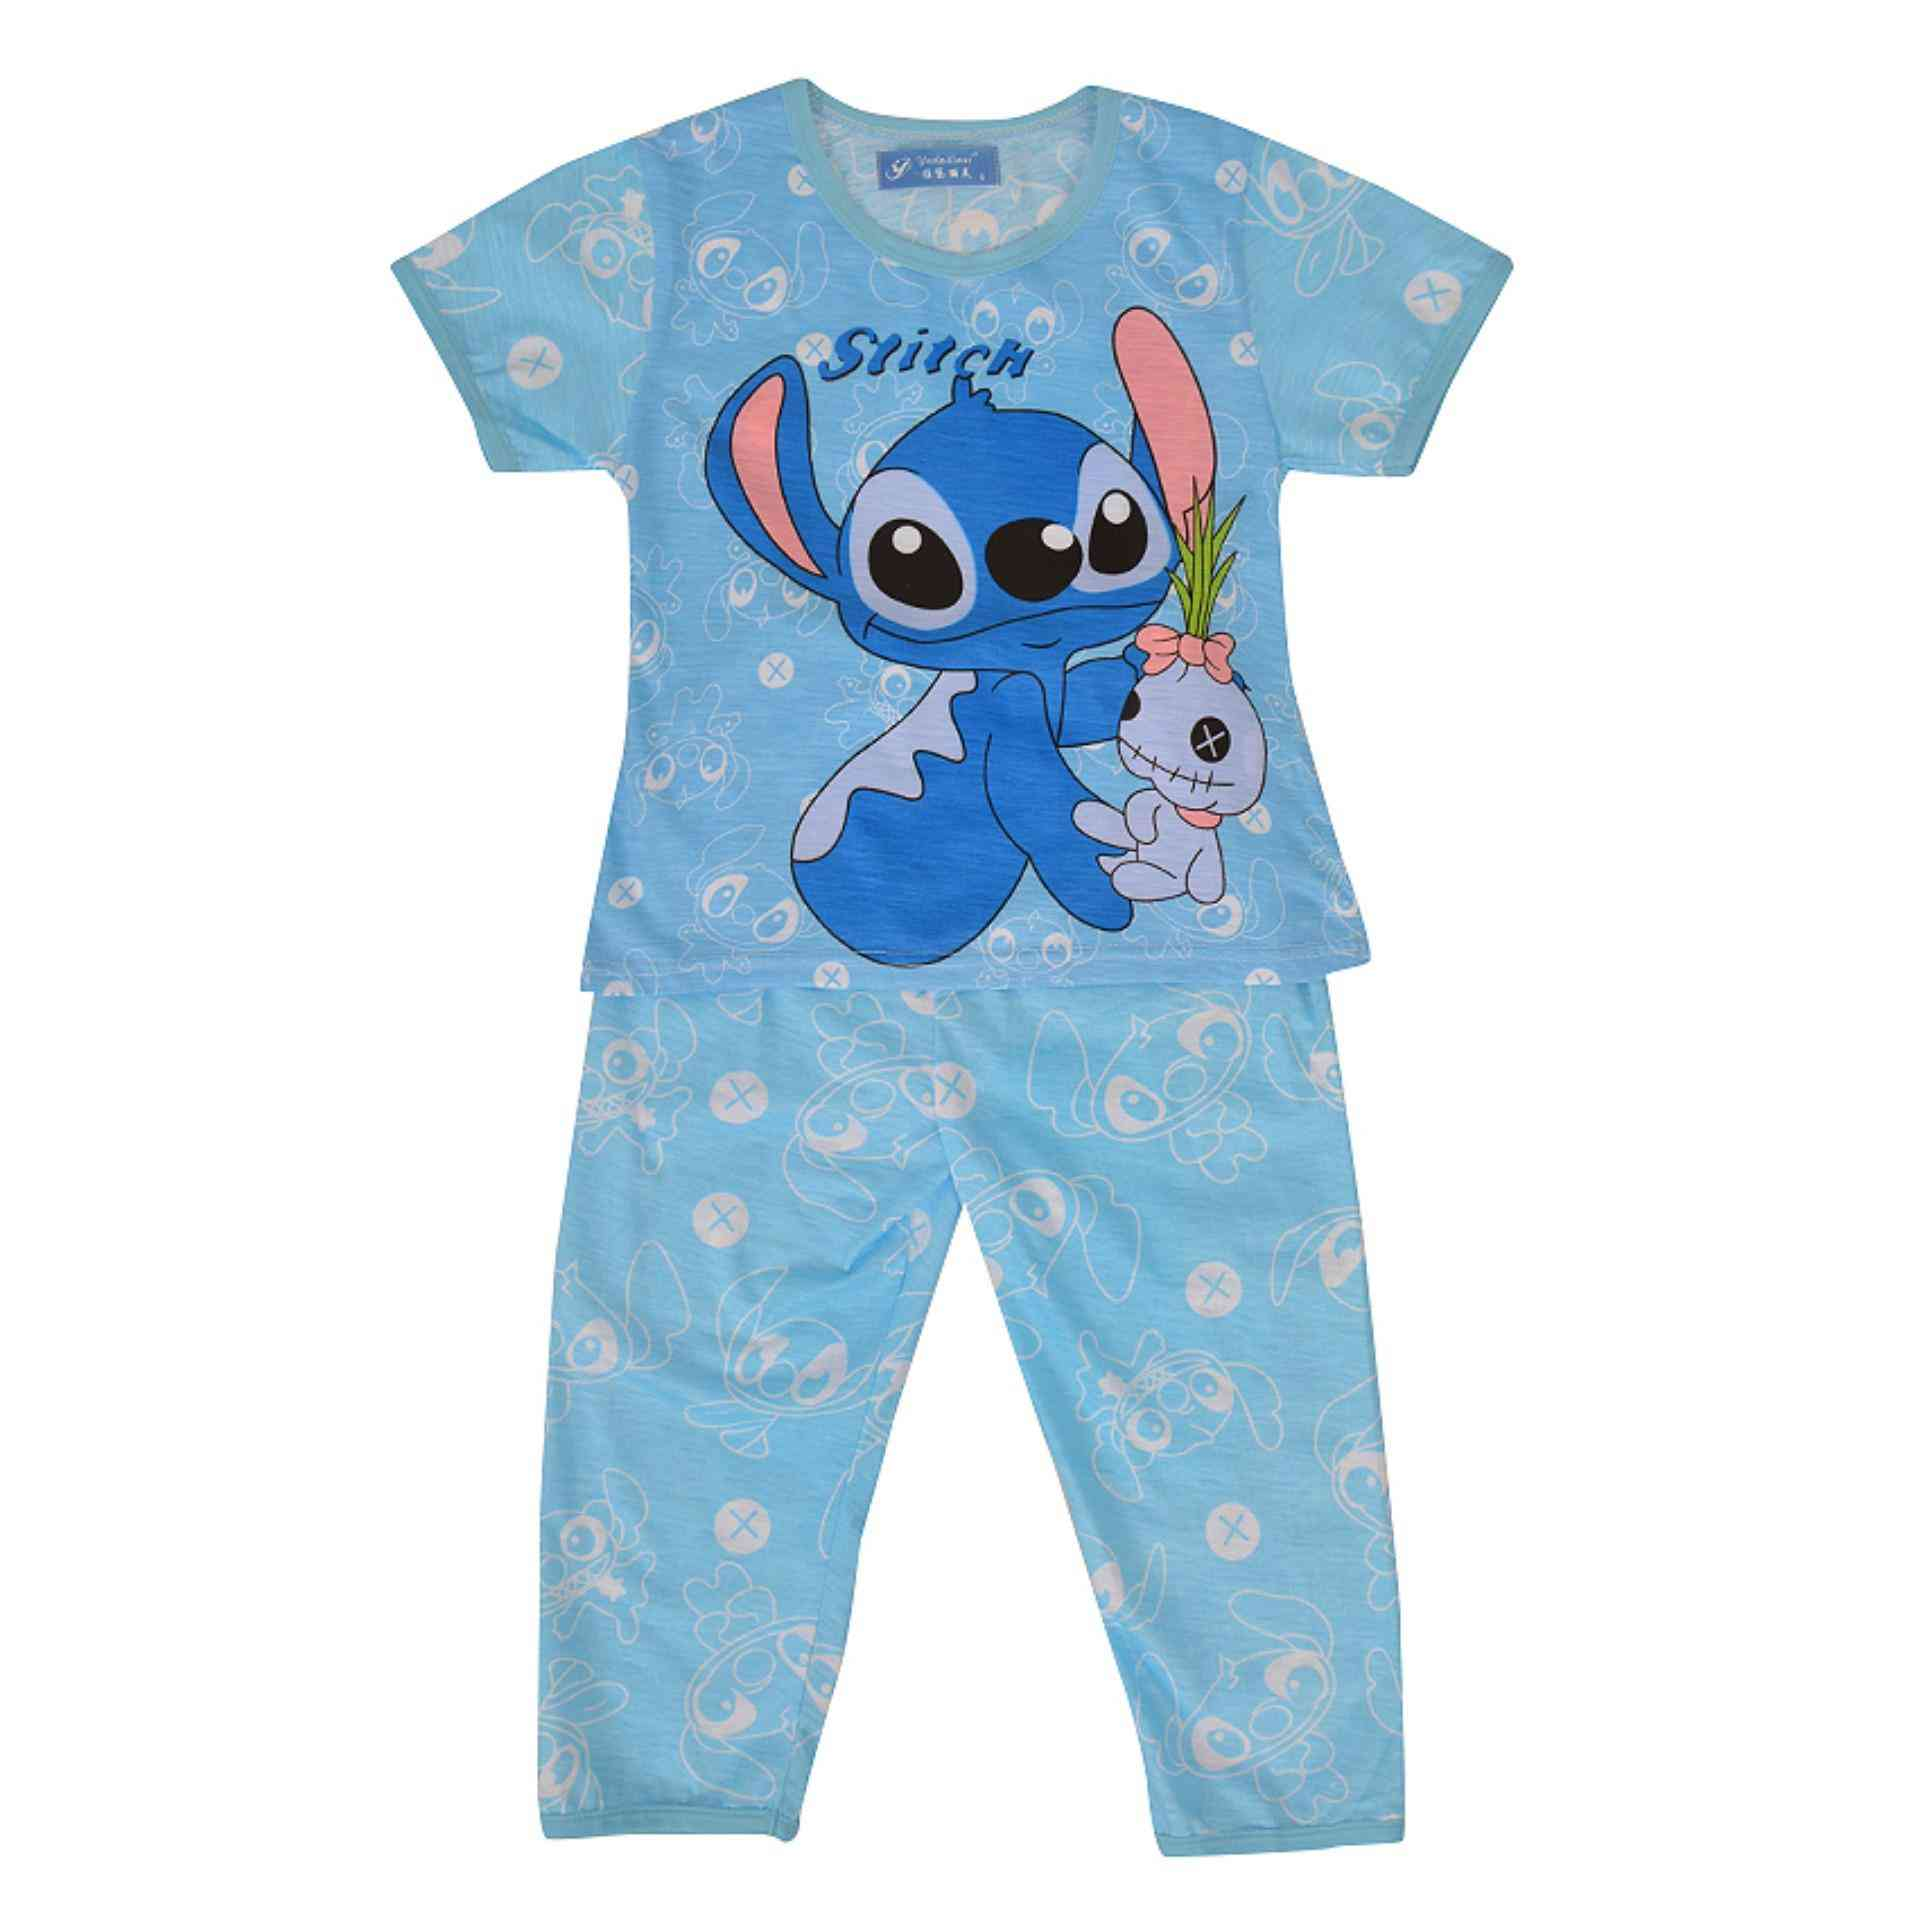 Pack of 2 Pure Cotton Night Suit (Pajama + Tshirt) for Boys - Cartoon